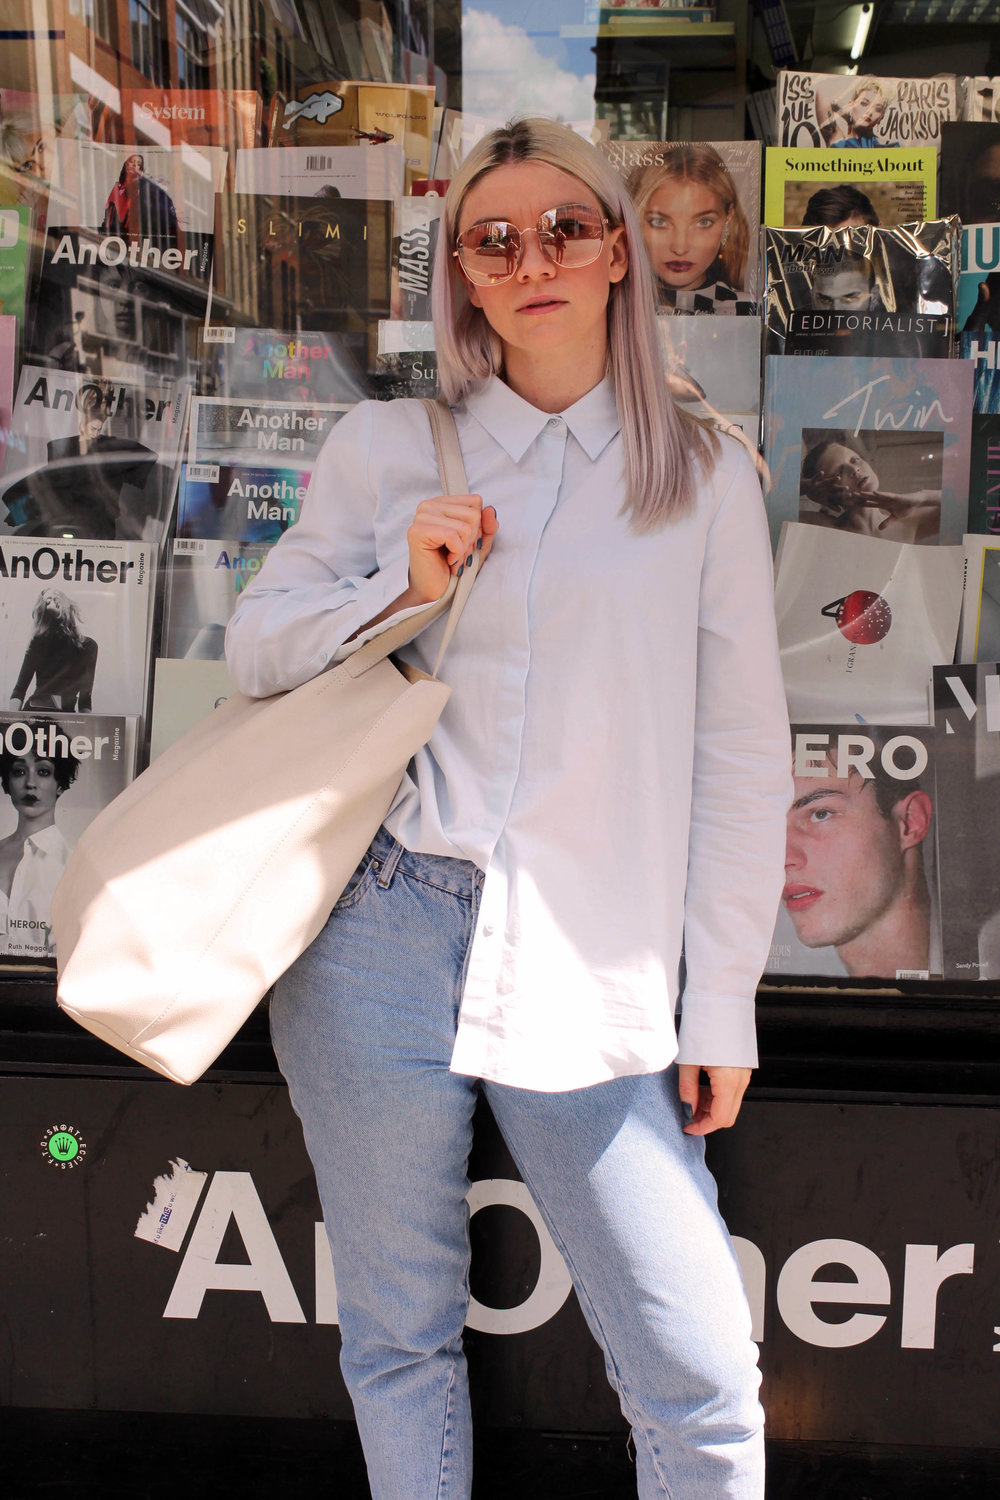 retro sunglasses, baby blue shirt, topshop jeans, northern magpie